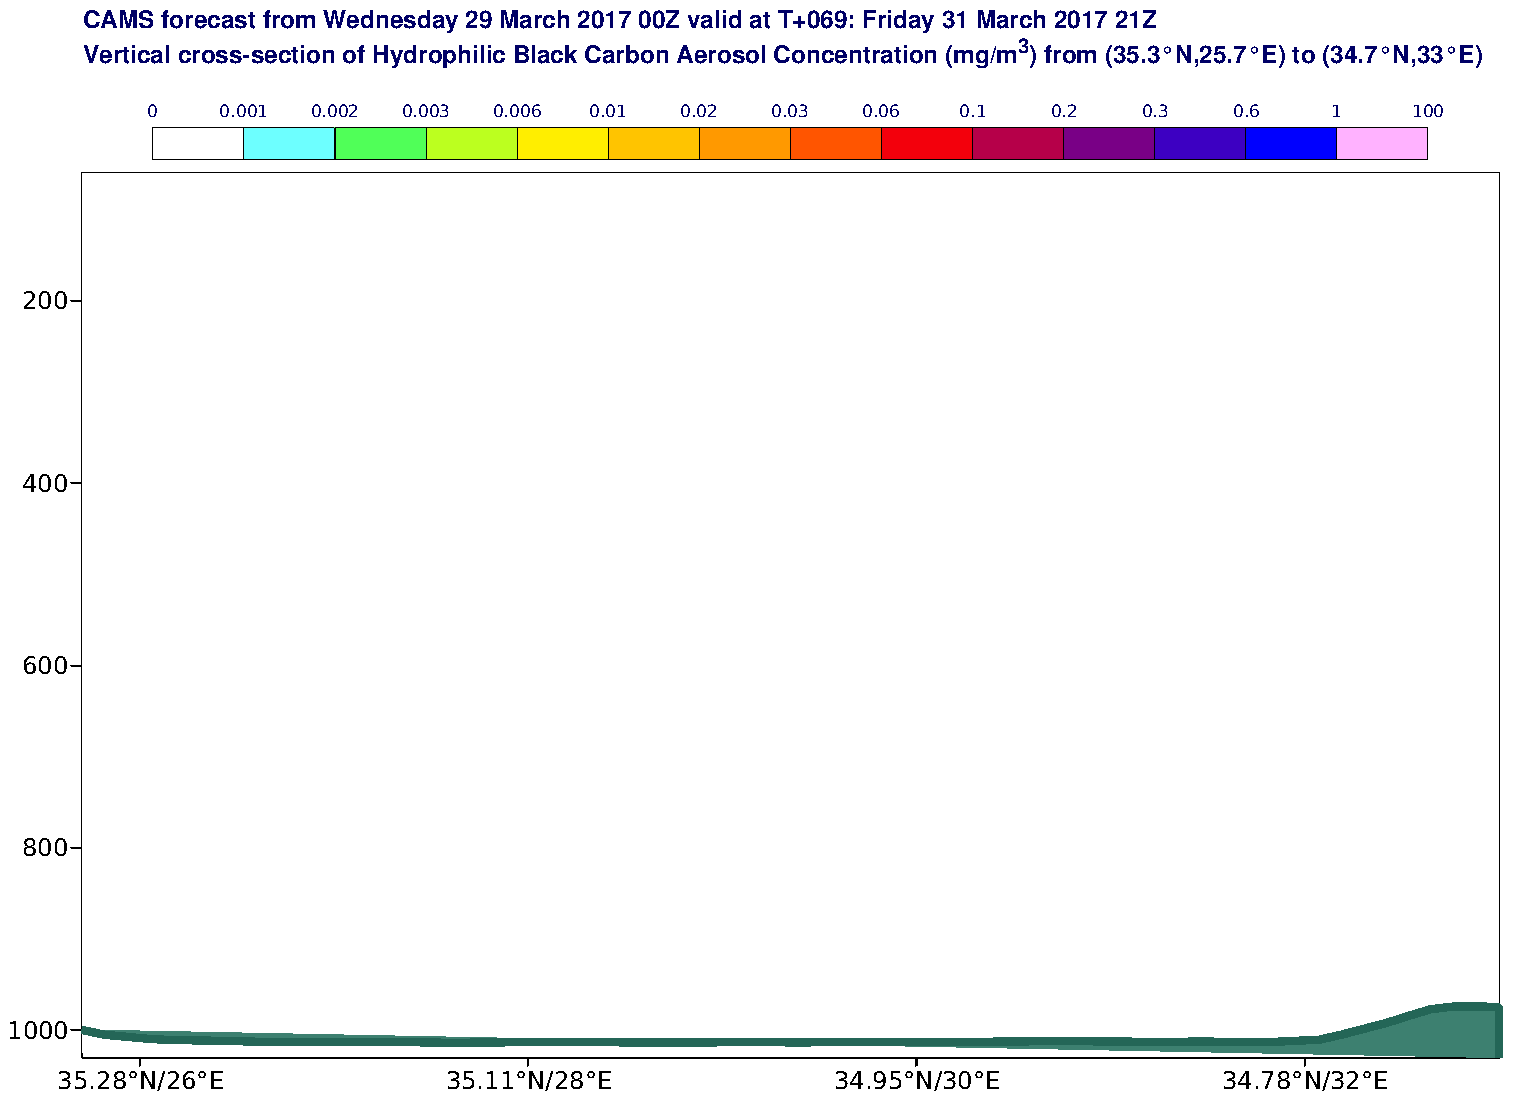 Vertical cross-section of Hydrophilic Black Carbon Aerosol Concentration (mg/m3) valid at T69 - 2017-03-31 21:00